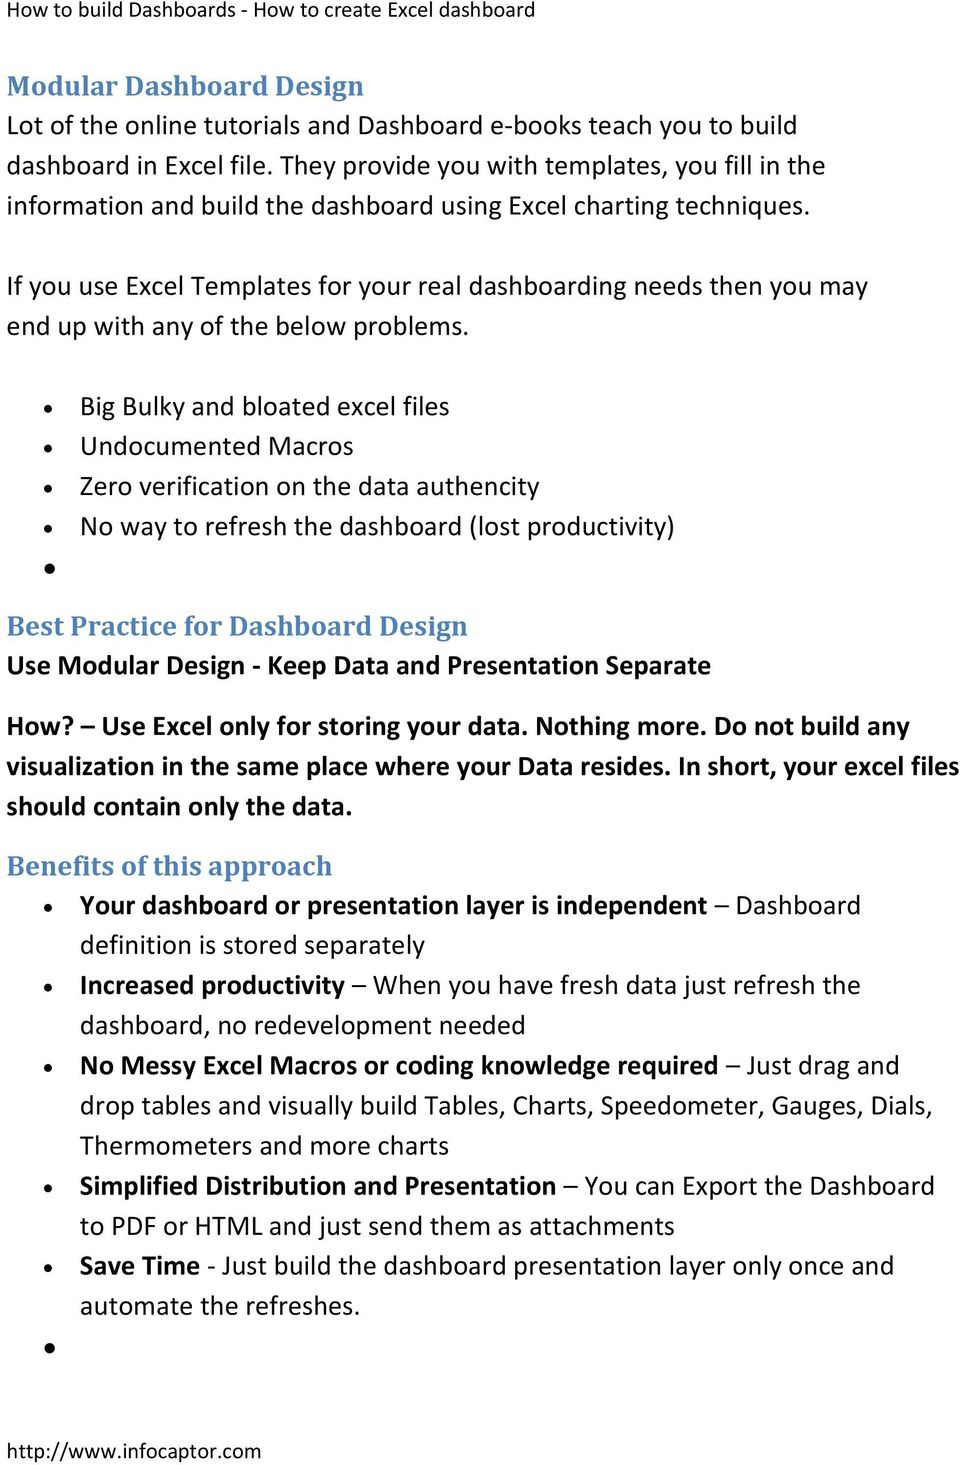 If you use Excel Templates for your real dashboarding needs then you may end up with any of the below problems.